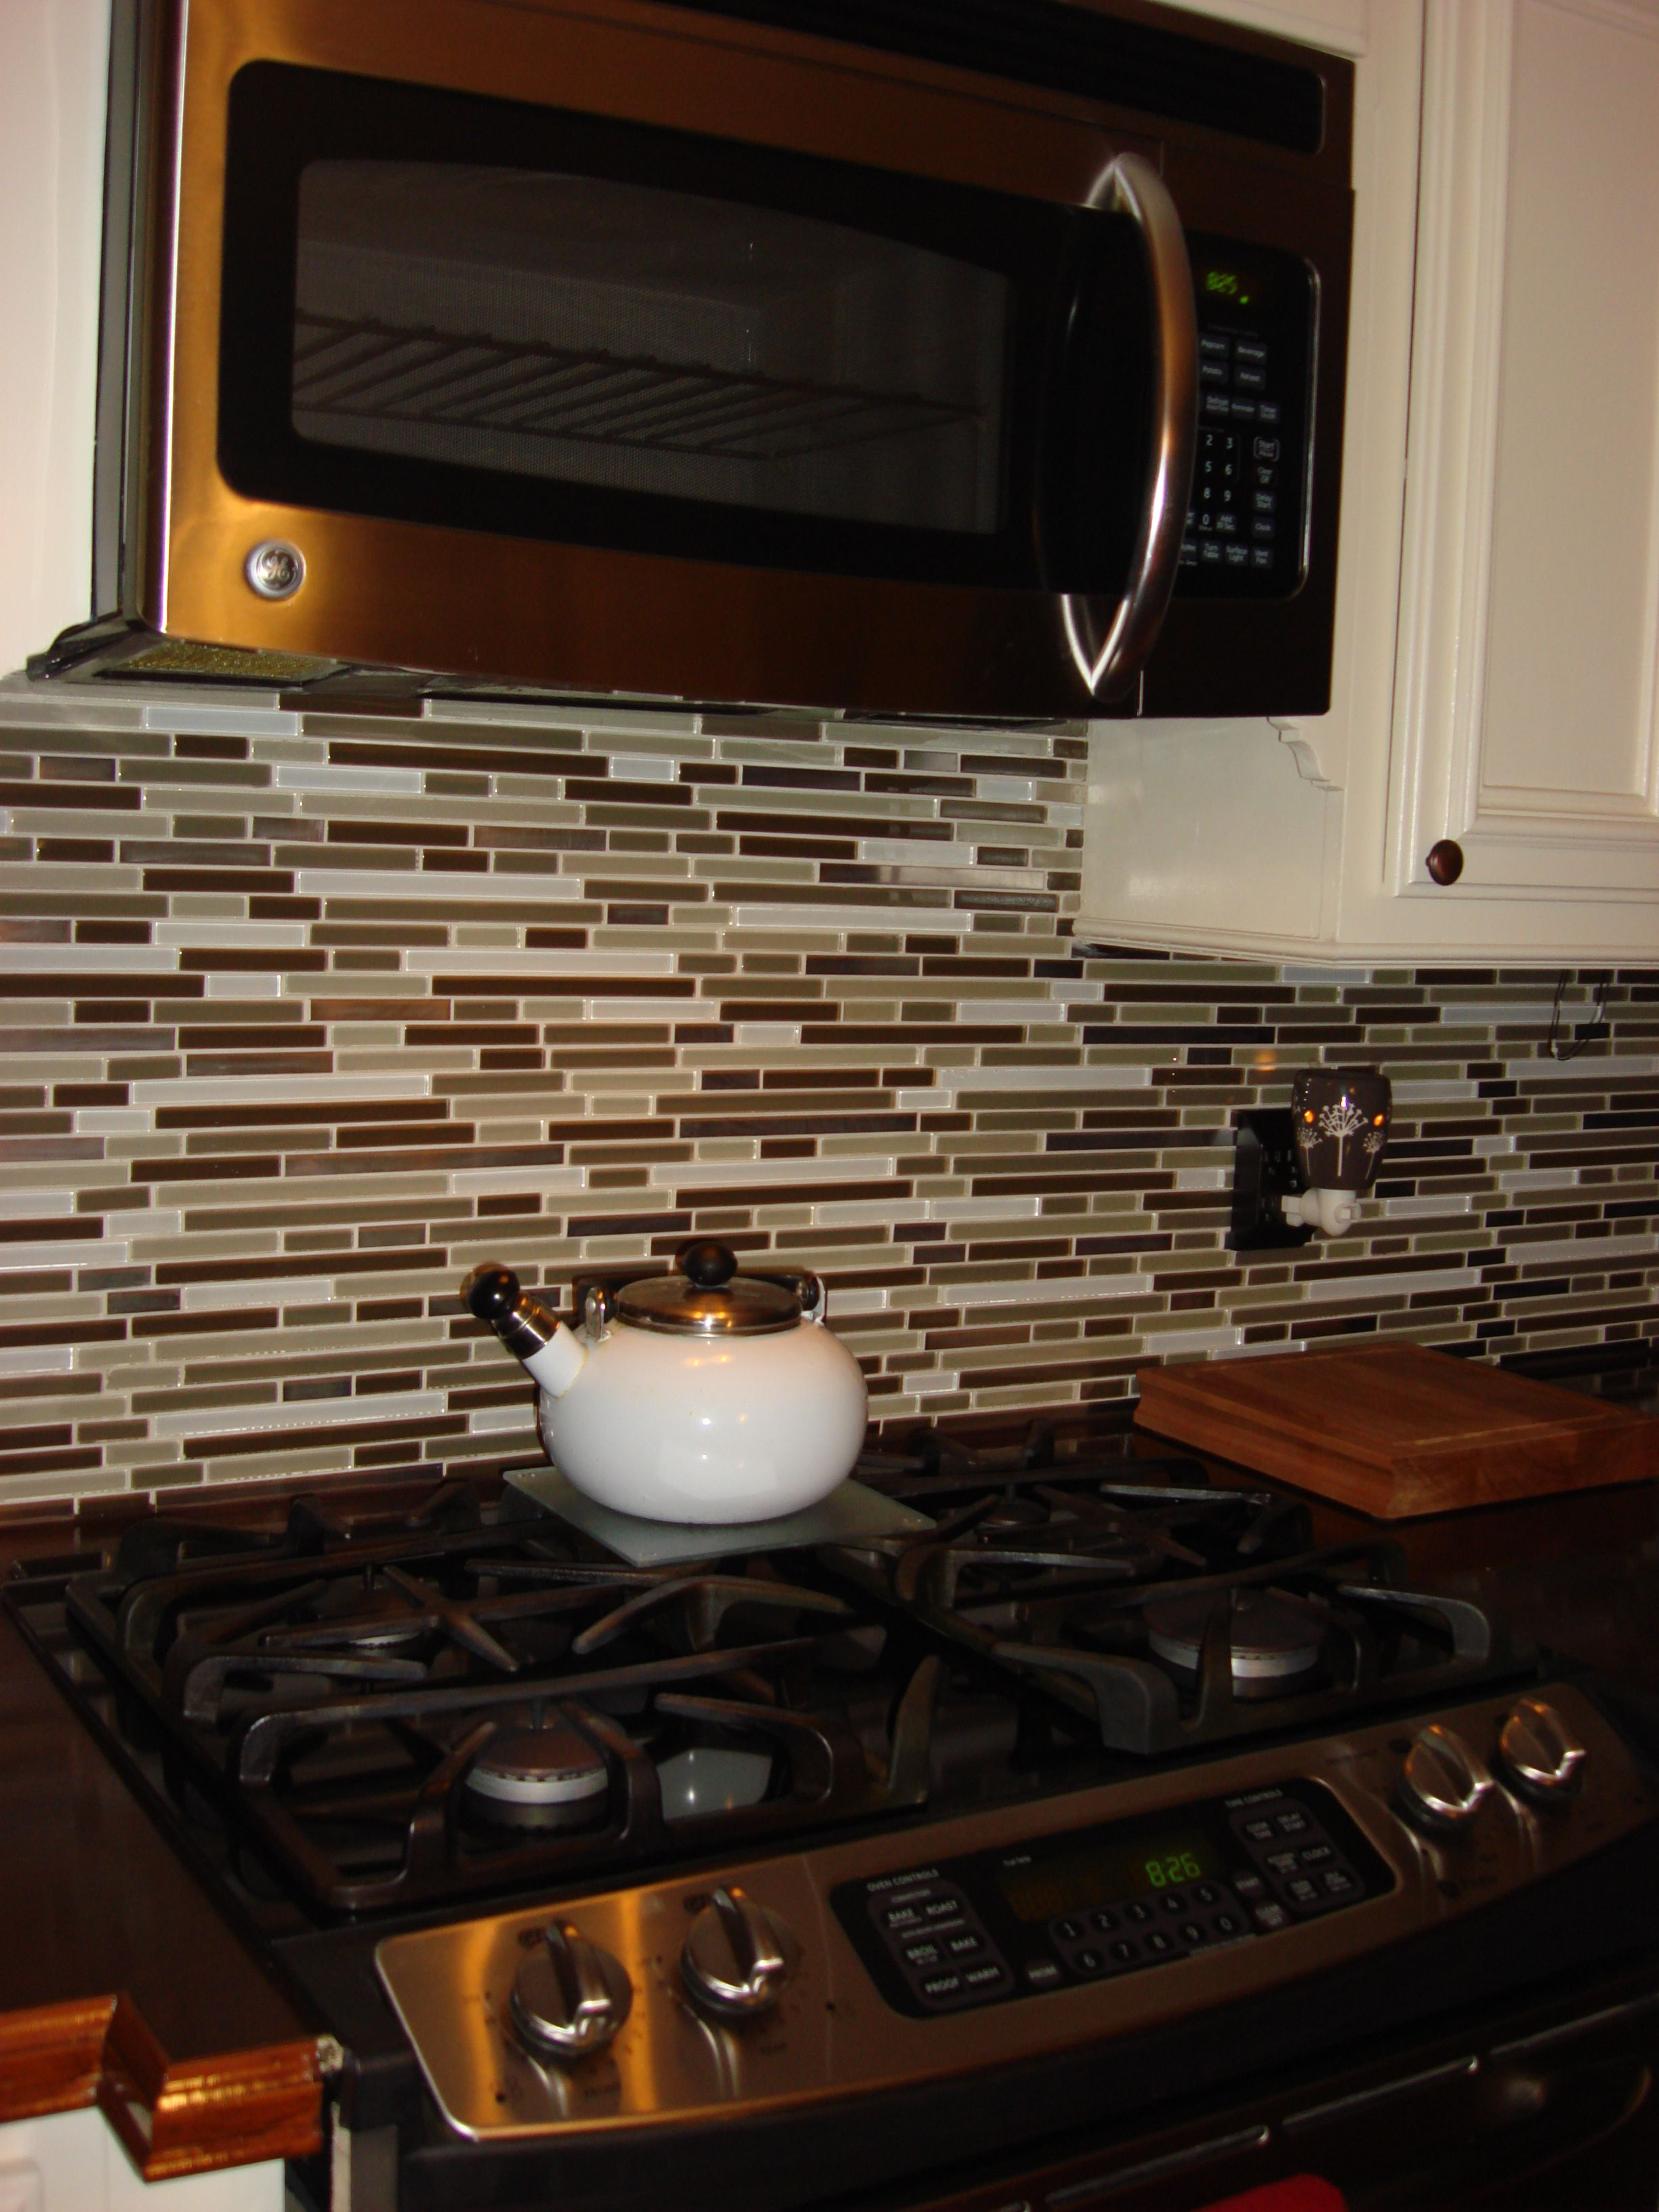 glass tile backsplash all the way up under the microwave kitchen